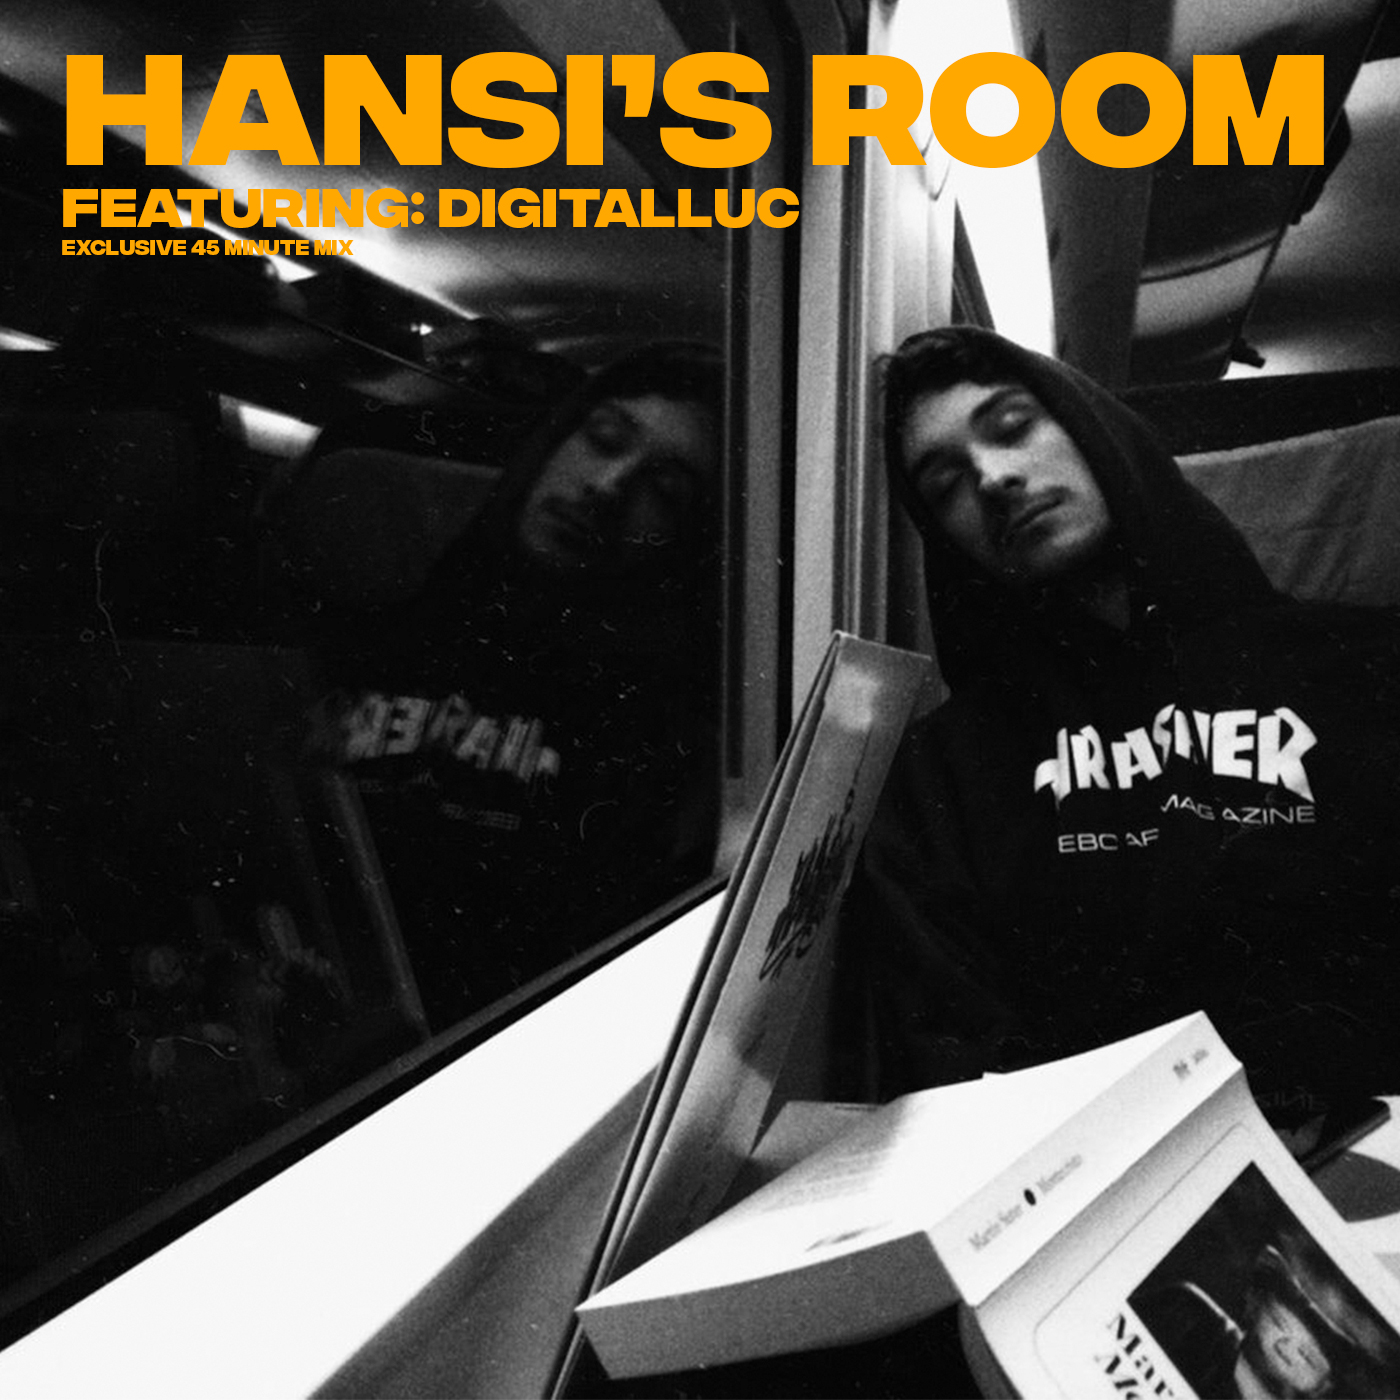 Hansi's Room - With Digitalluc